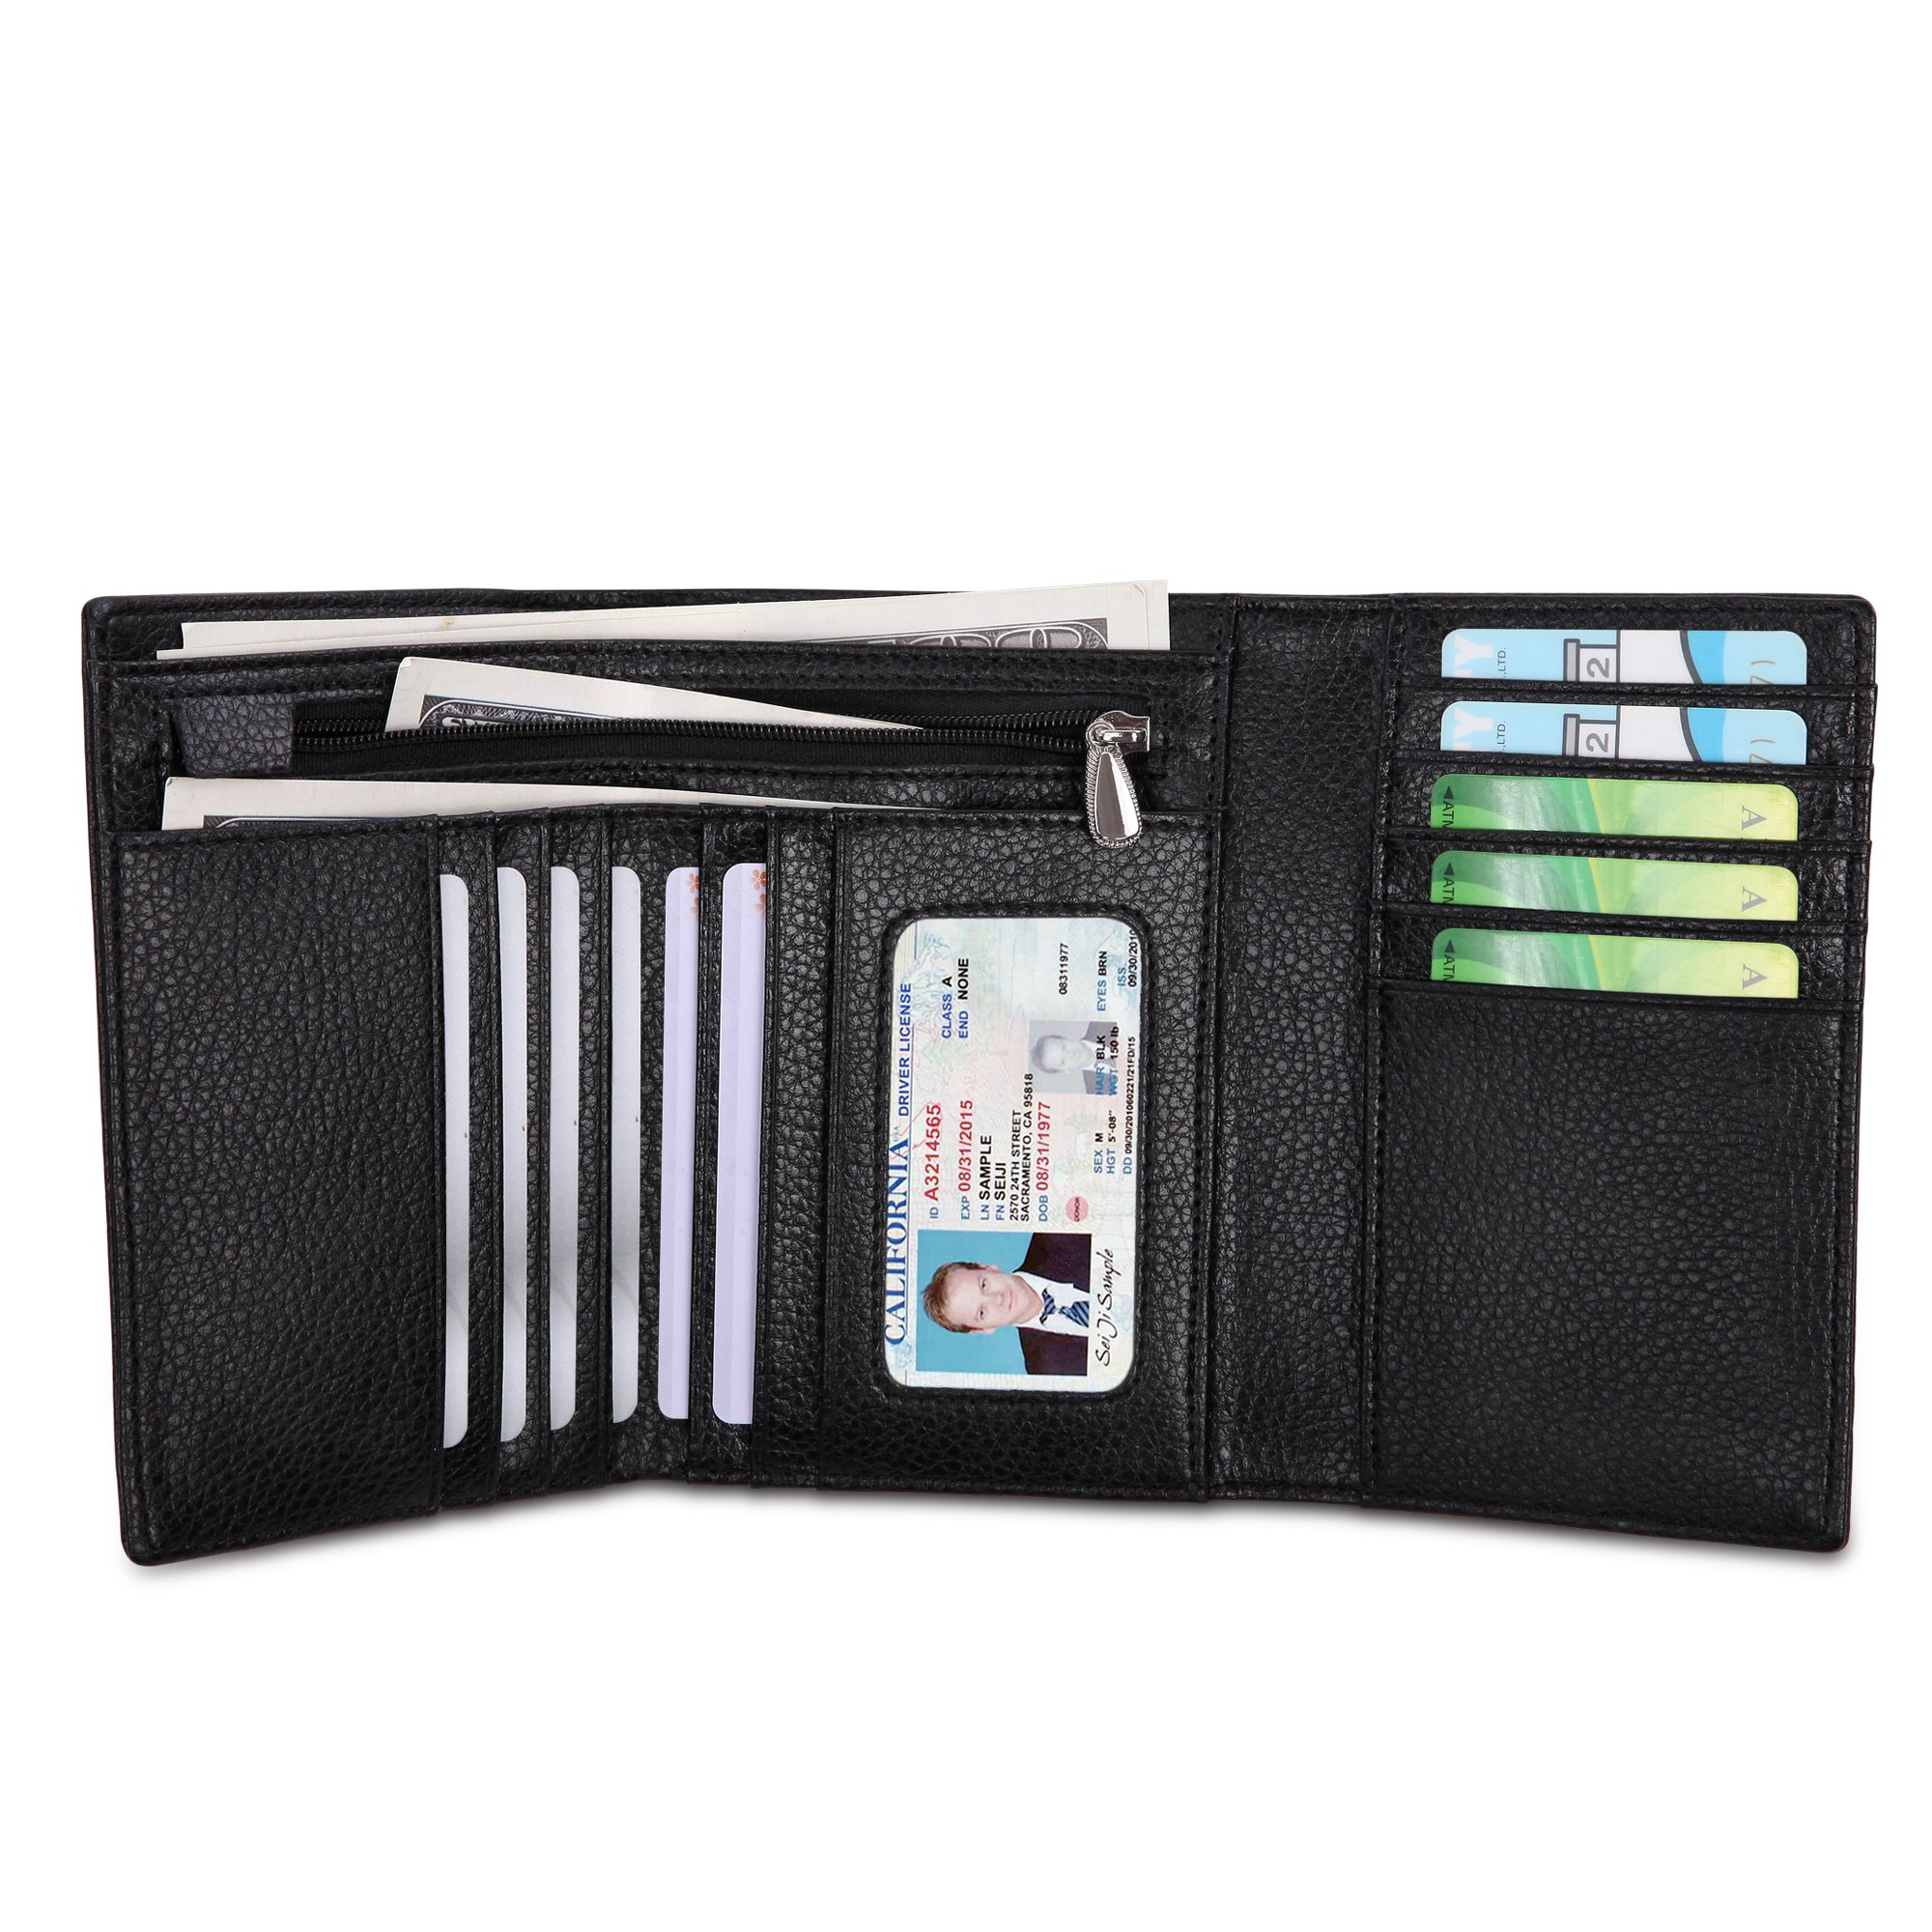 Women RFID Blocking Real Leather Trifold Wallet - Clutch Checkbook Wallet for Women - Shield Against Identity Theft (Short black)